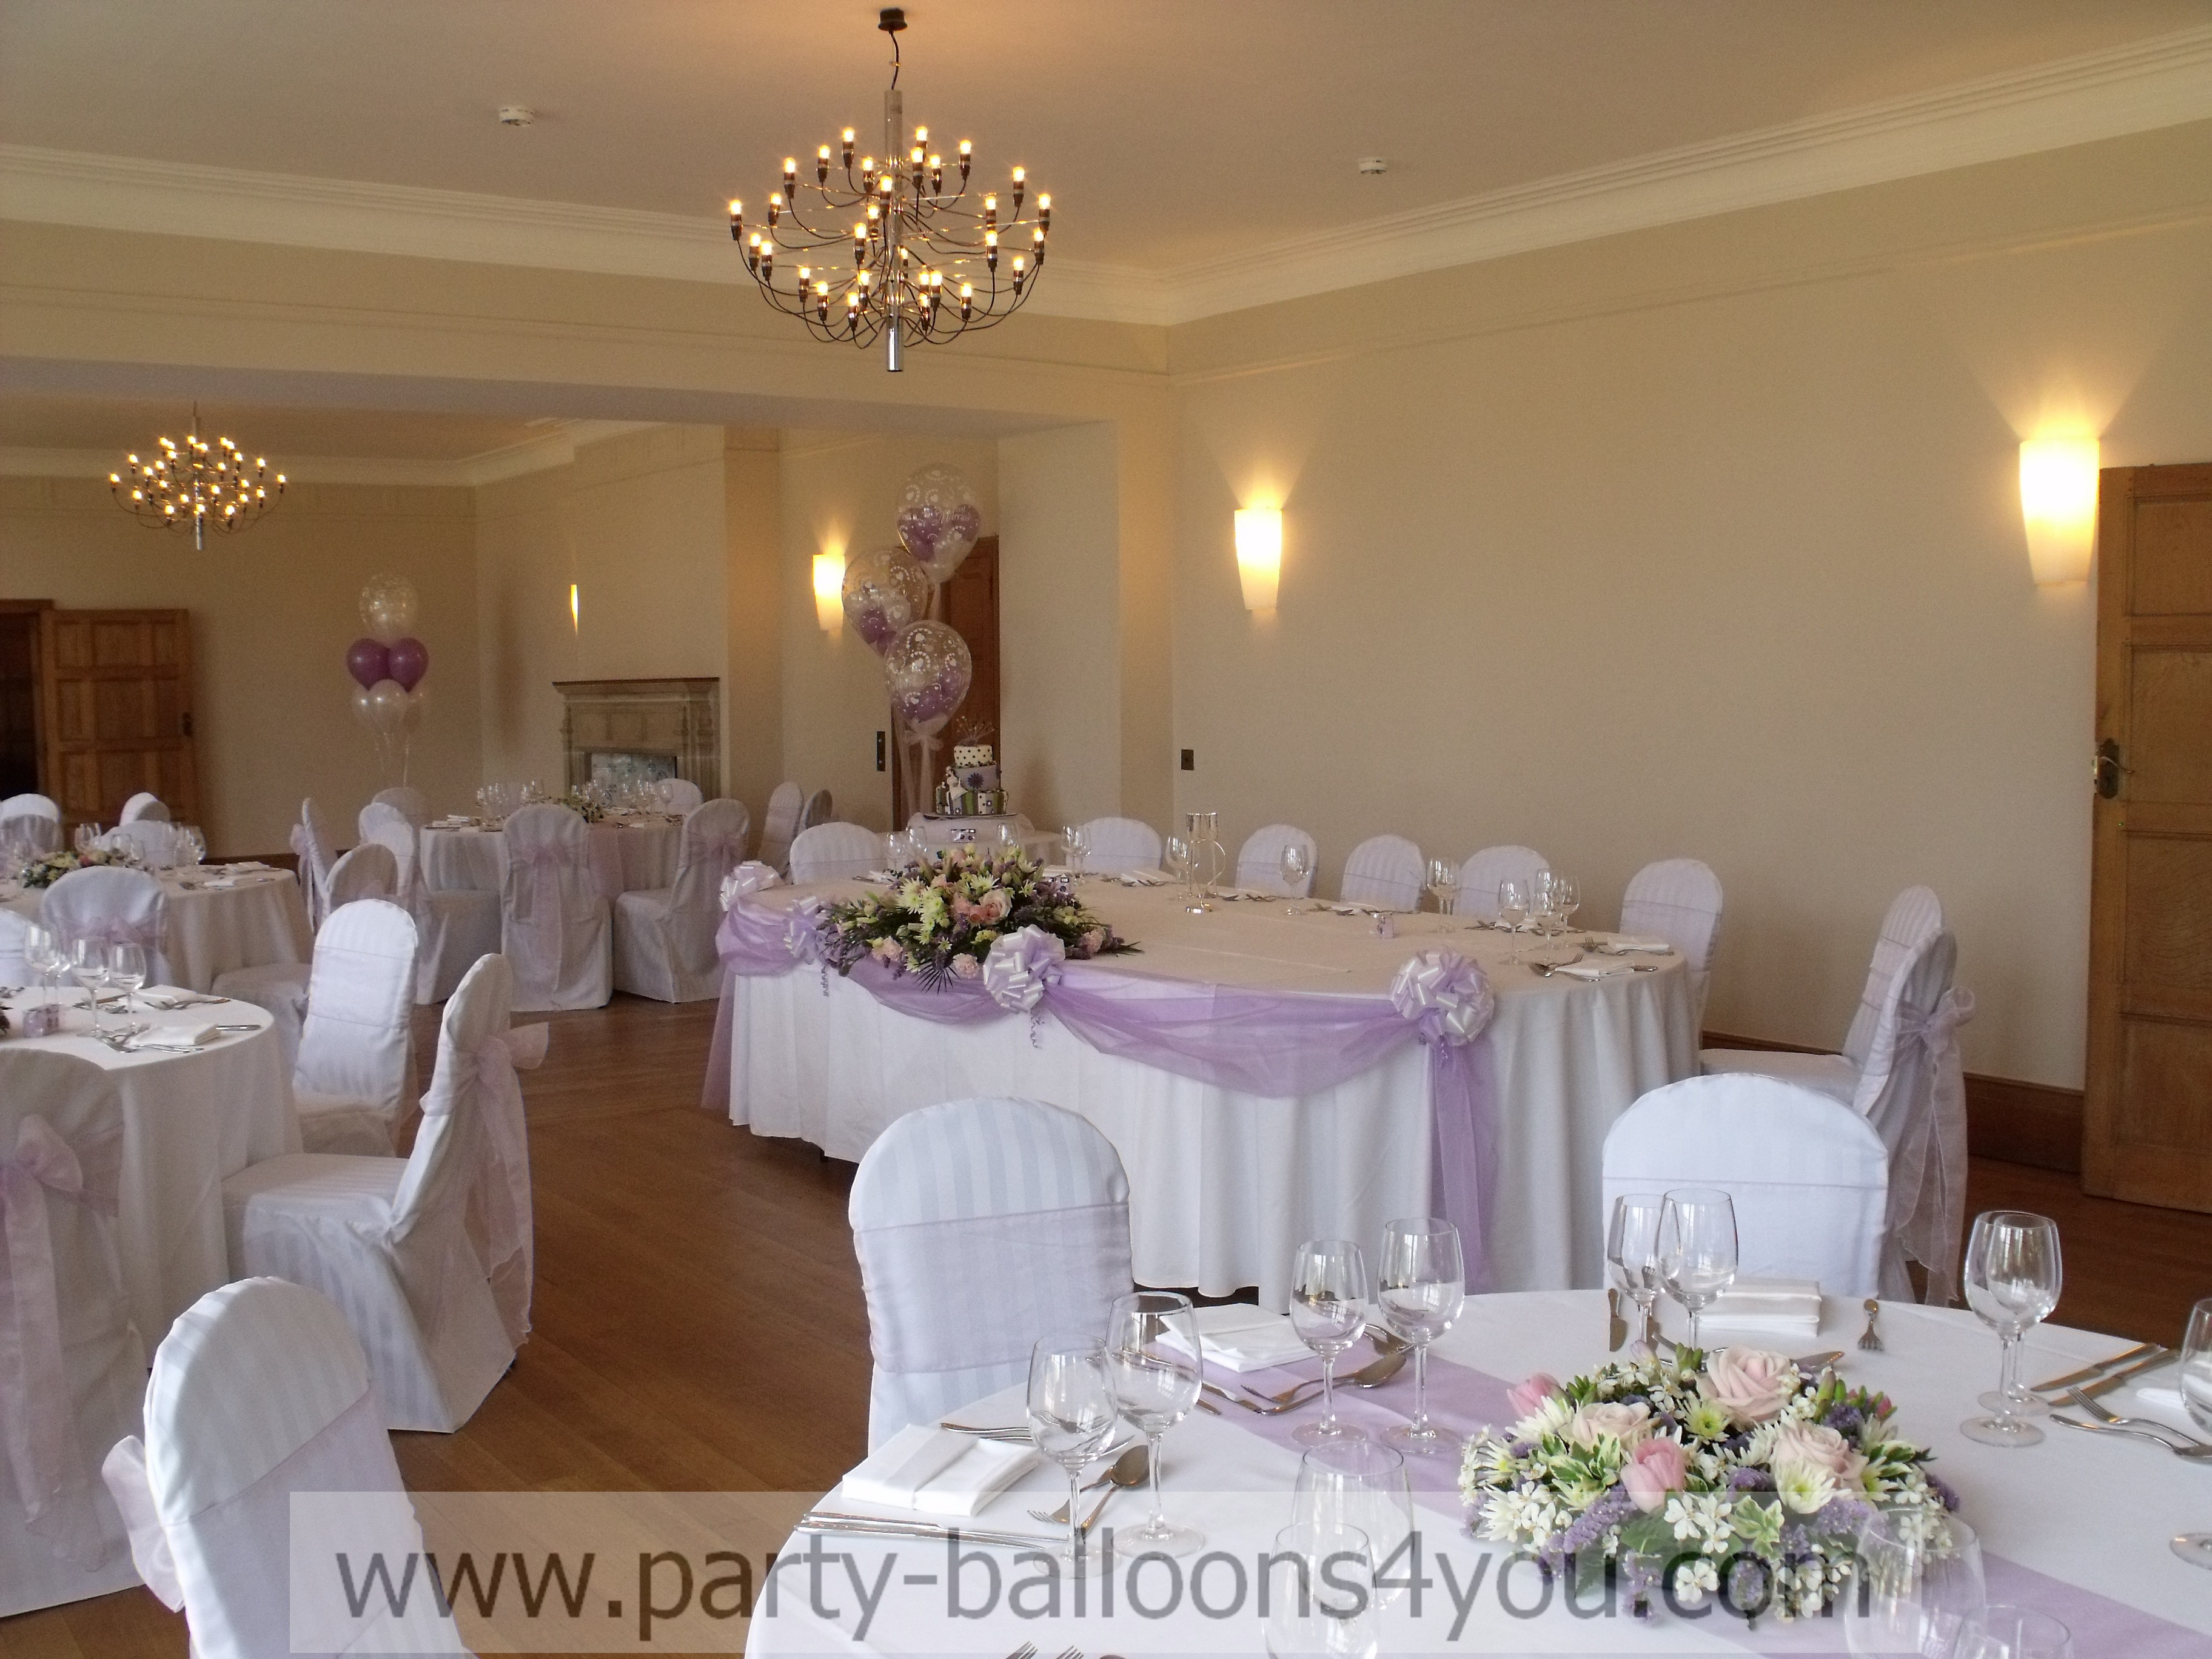 chair covers bristol and bath farm table with chairs wedding decorations coombe lodge blagdon